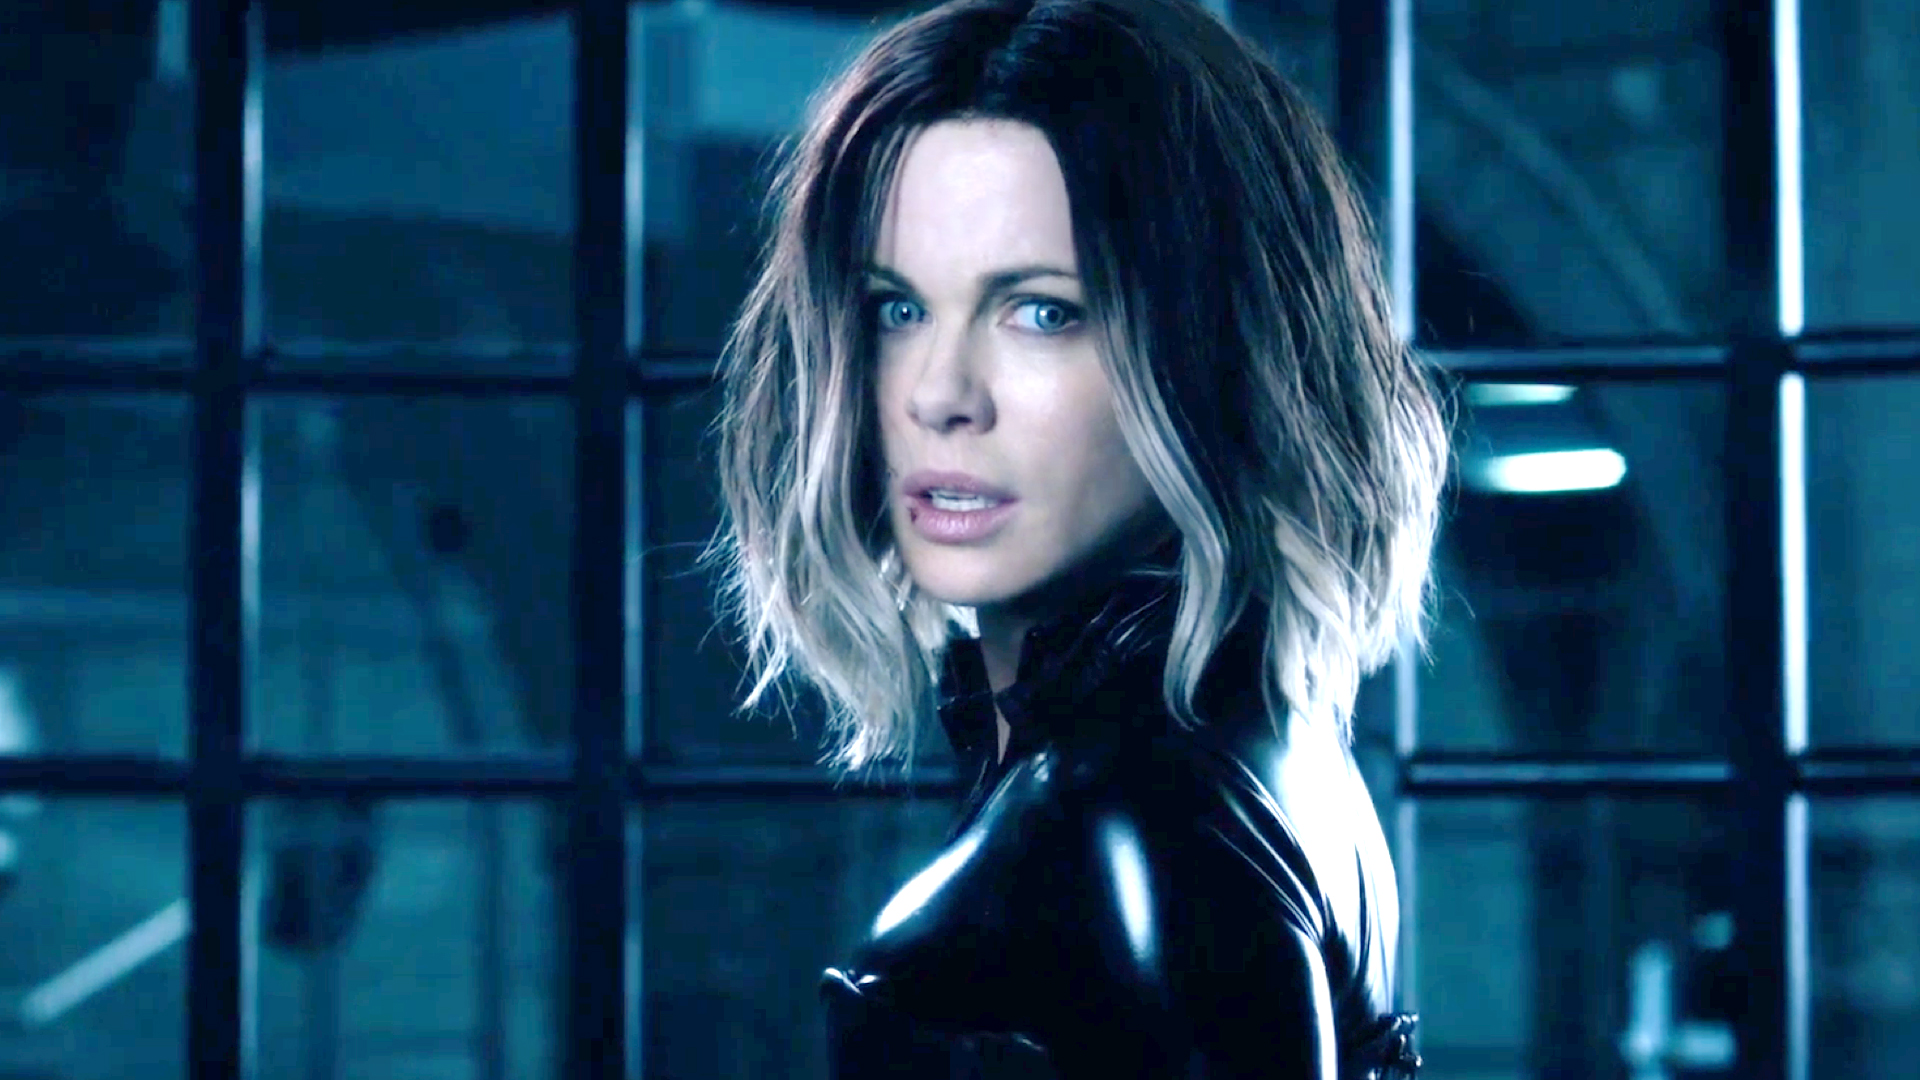 TRAILER: Underworld: Blood Wars